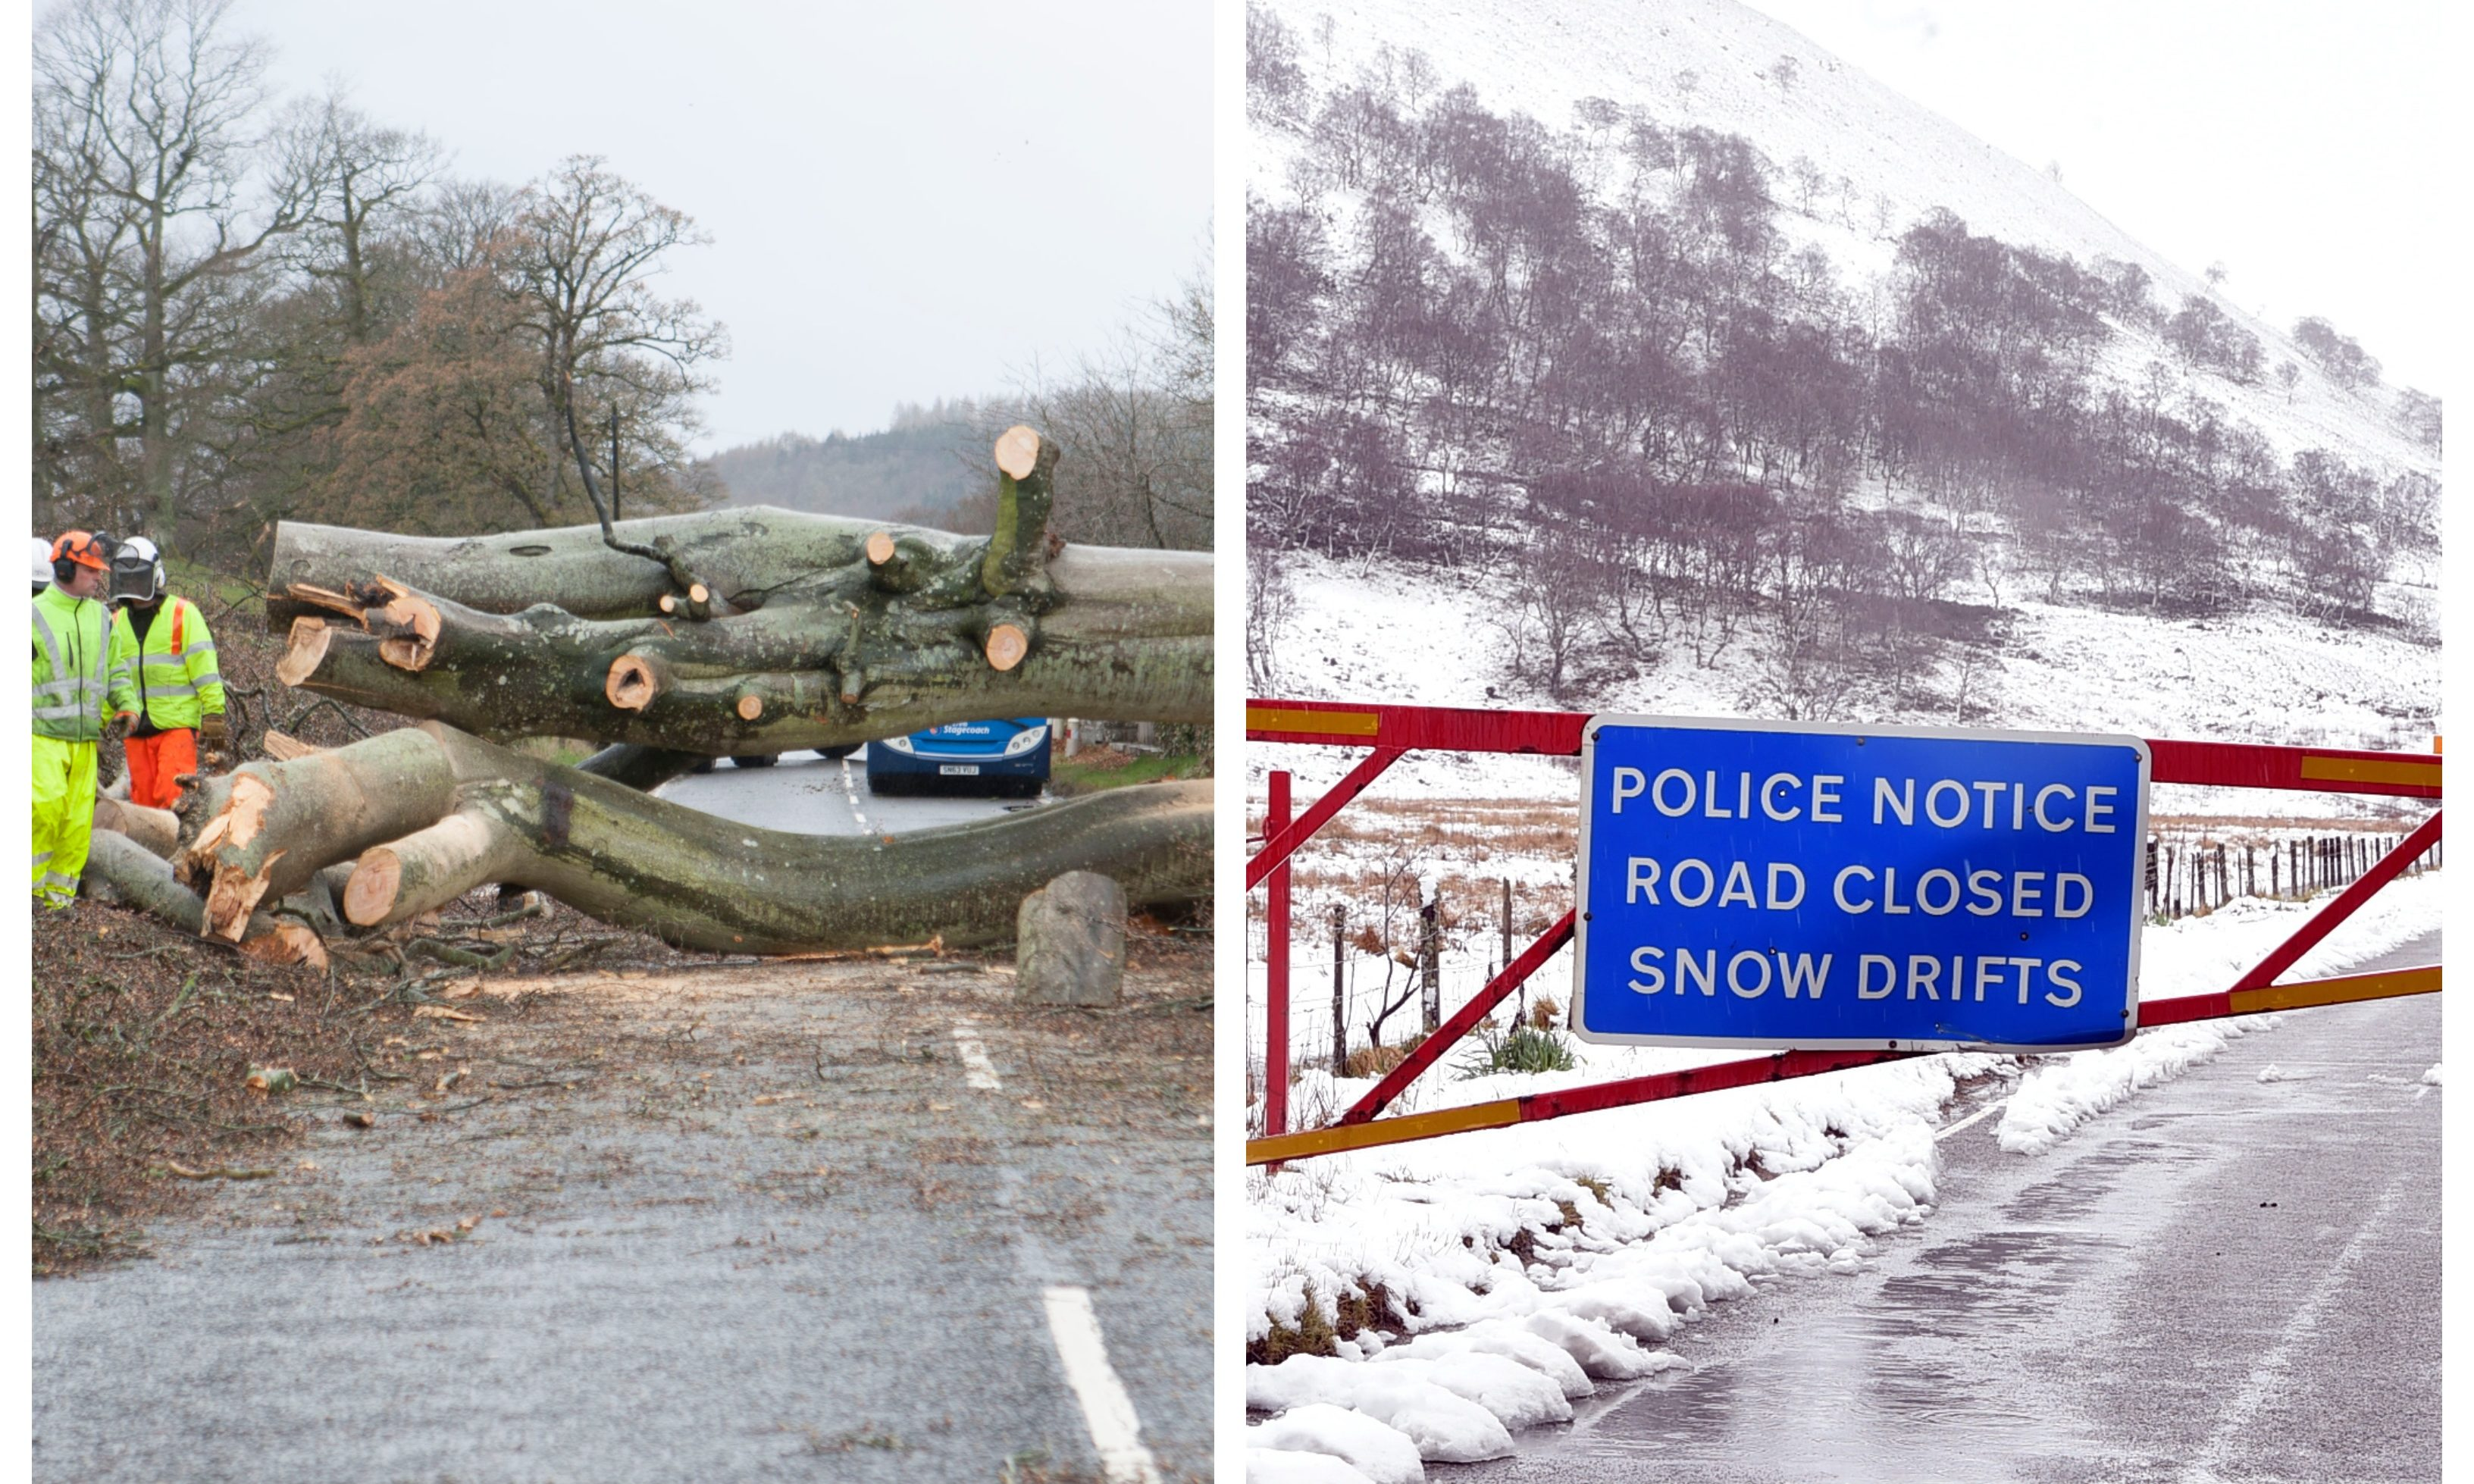 The A85 was blocked by a fallen tree, while the snow gates were also shut at Glenshee.